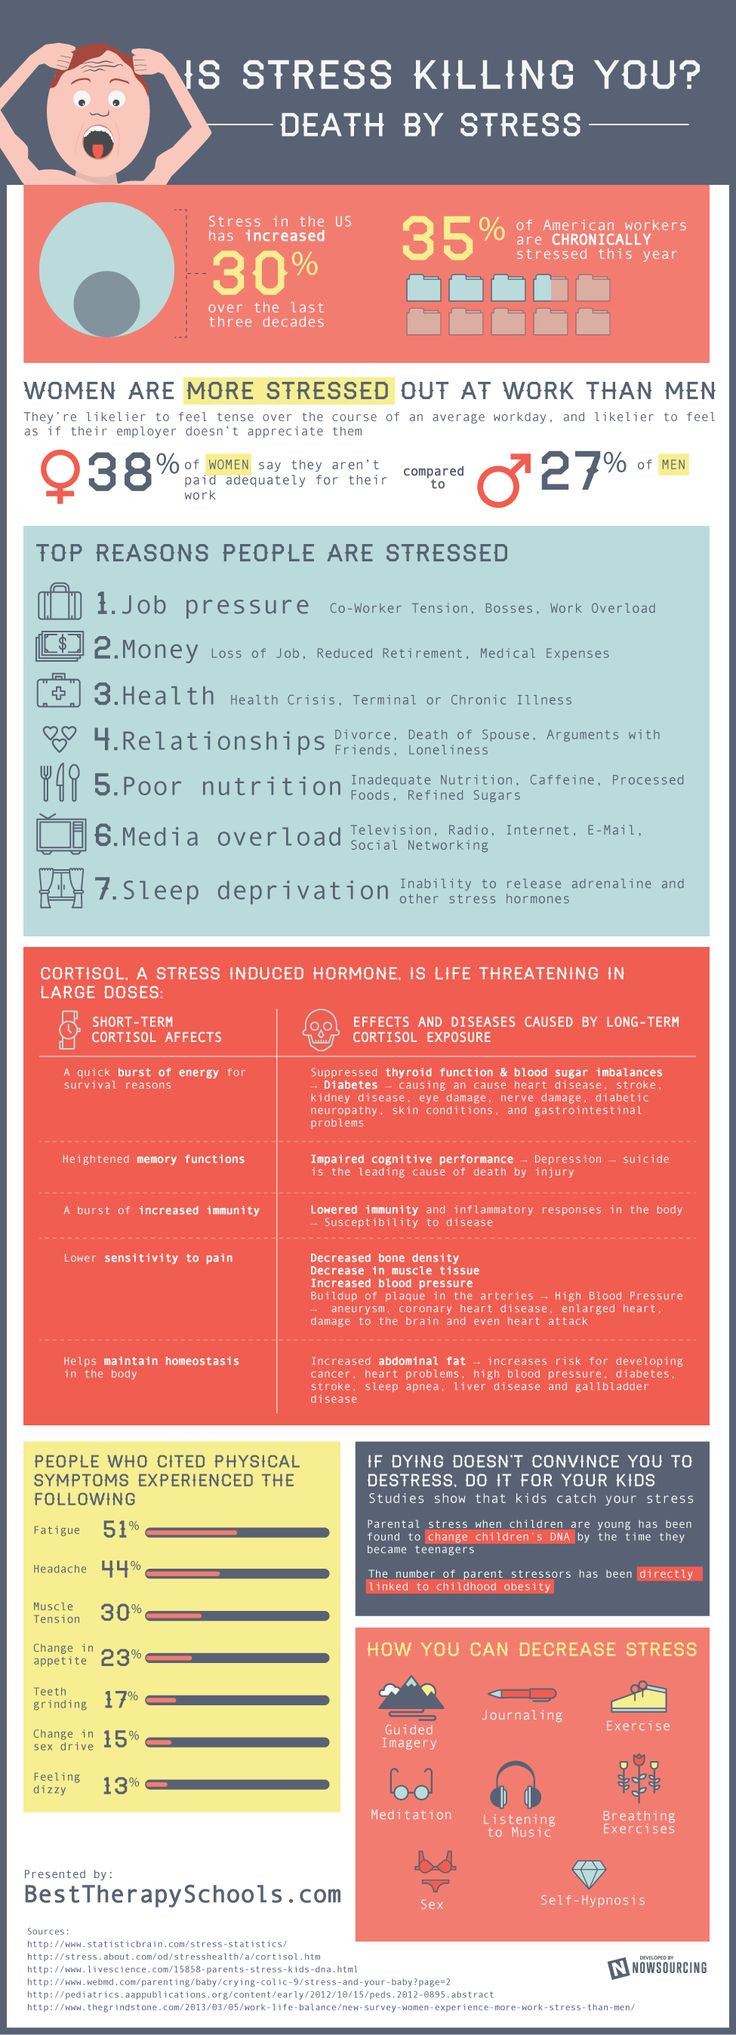 Why and how stress may be killing you. Why women are more stressed at work then men. Interesting infog